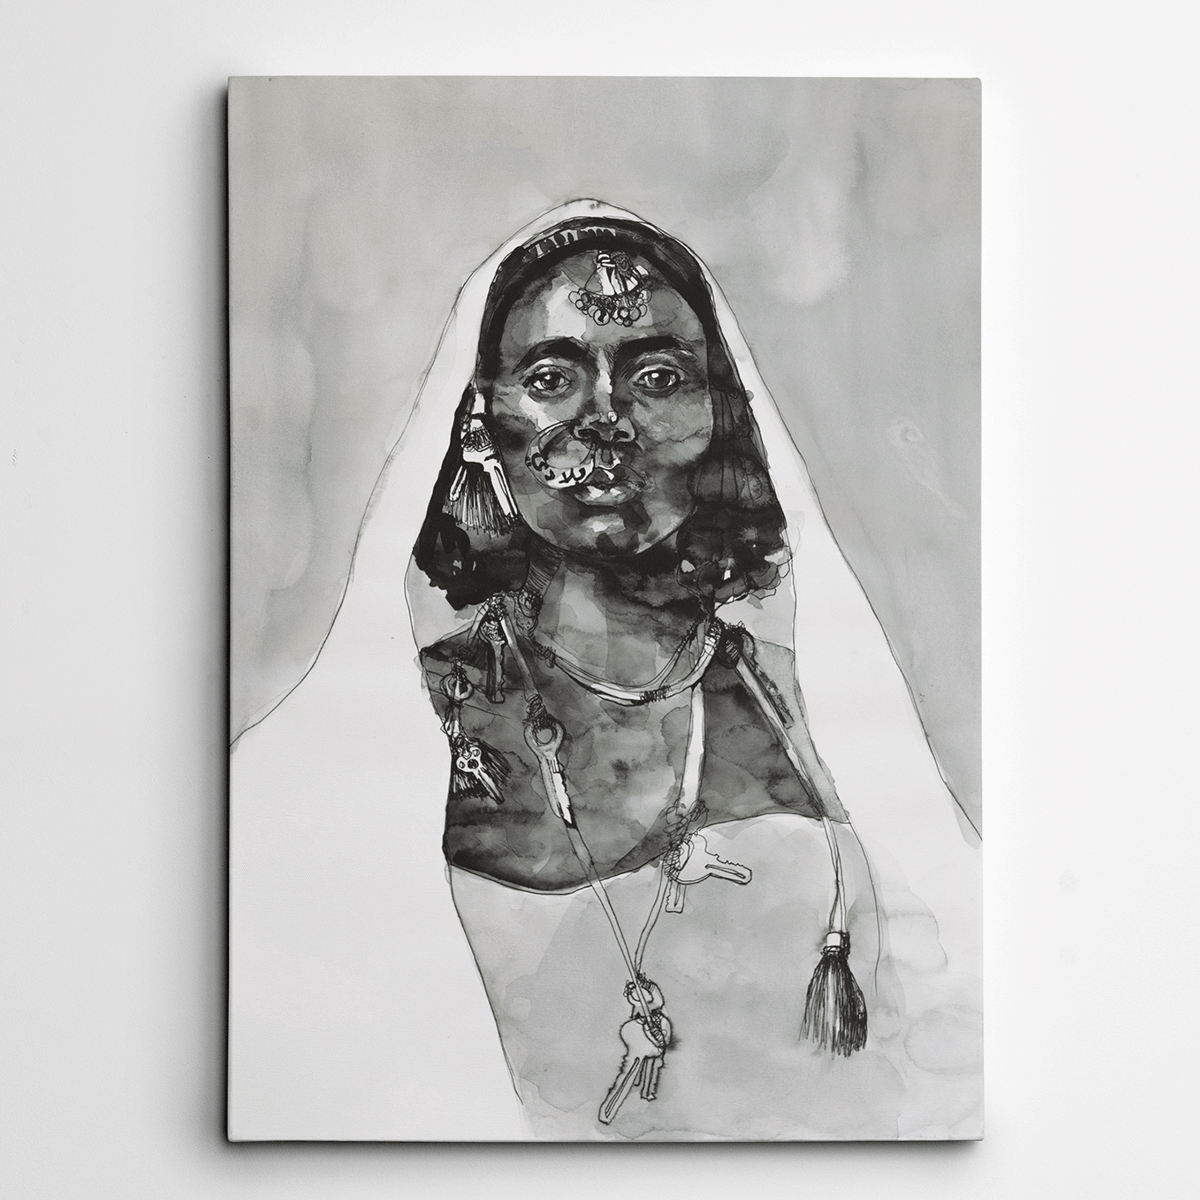 Canvas Art,Canvas Wall Art,Canvas Artwork,Black and White Canvas Art,Yislamoo